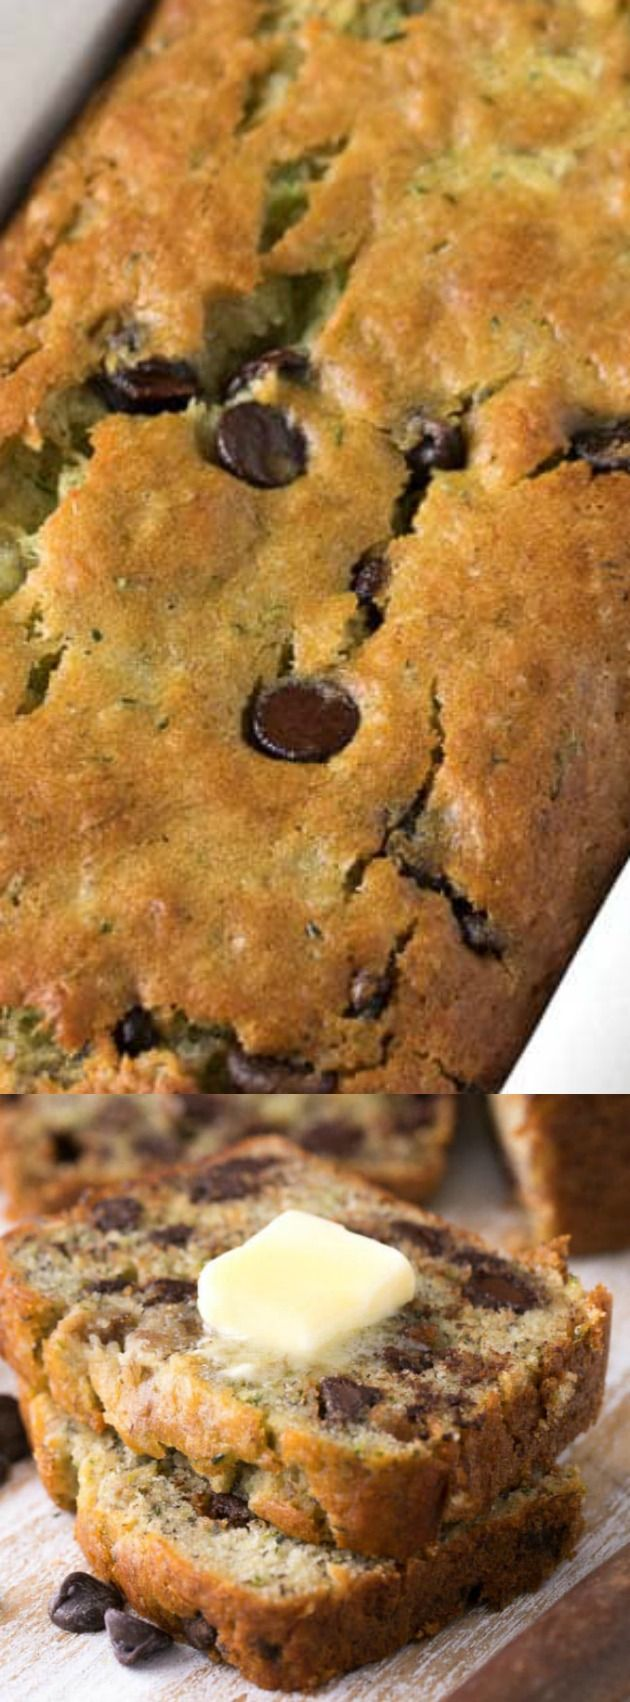 This Chocolate Chip Zucchini Banana Bread from Spend With Pennies is so tasty! Packed with fruit, veggies and luscious chocolate chips, this is one recipe you can feel good about making and sharing!